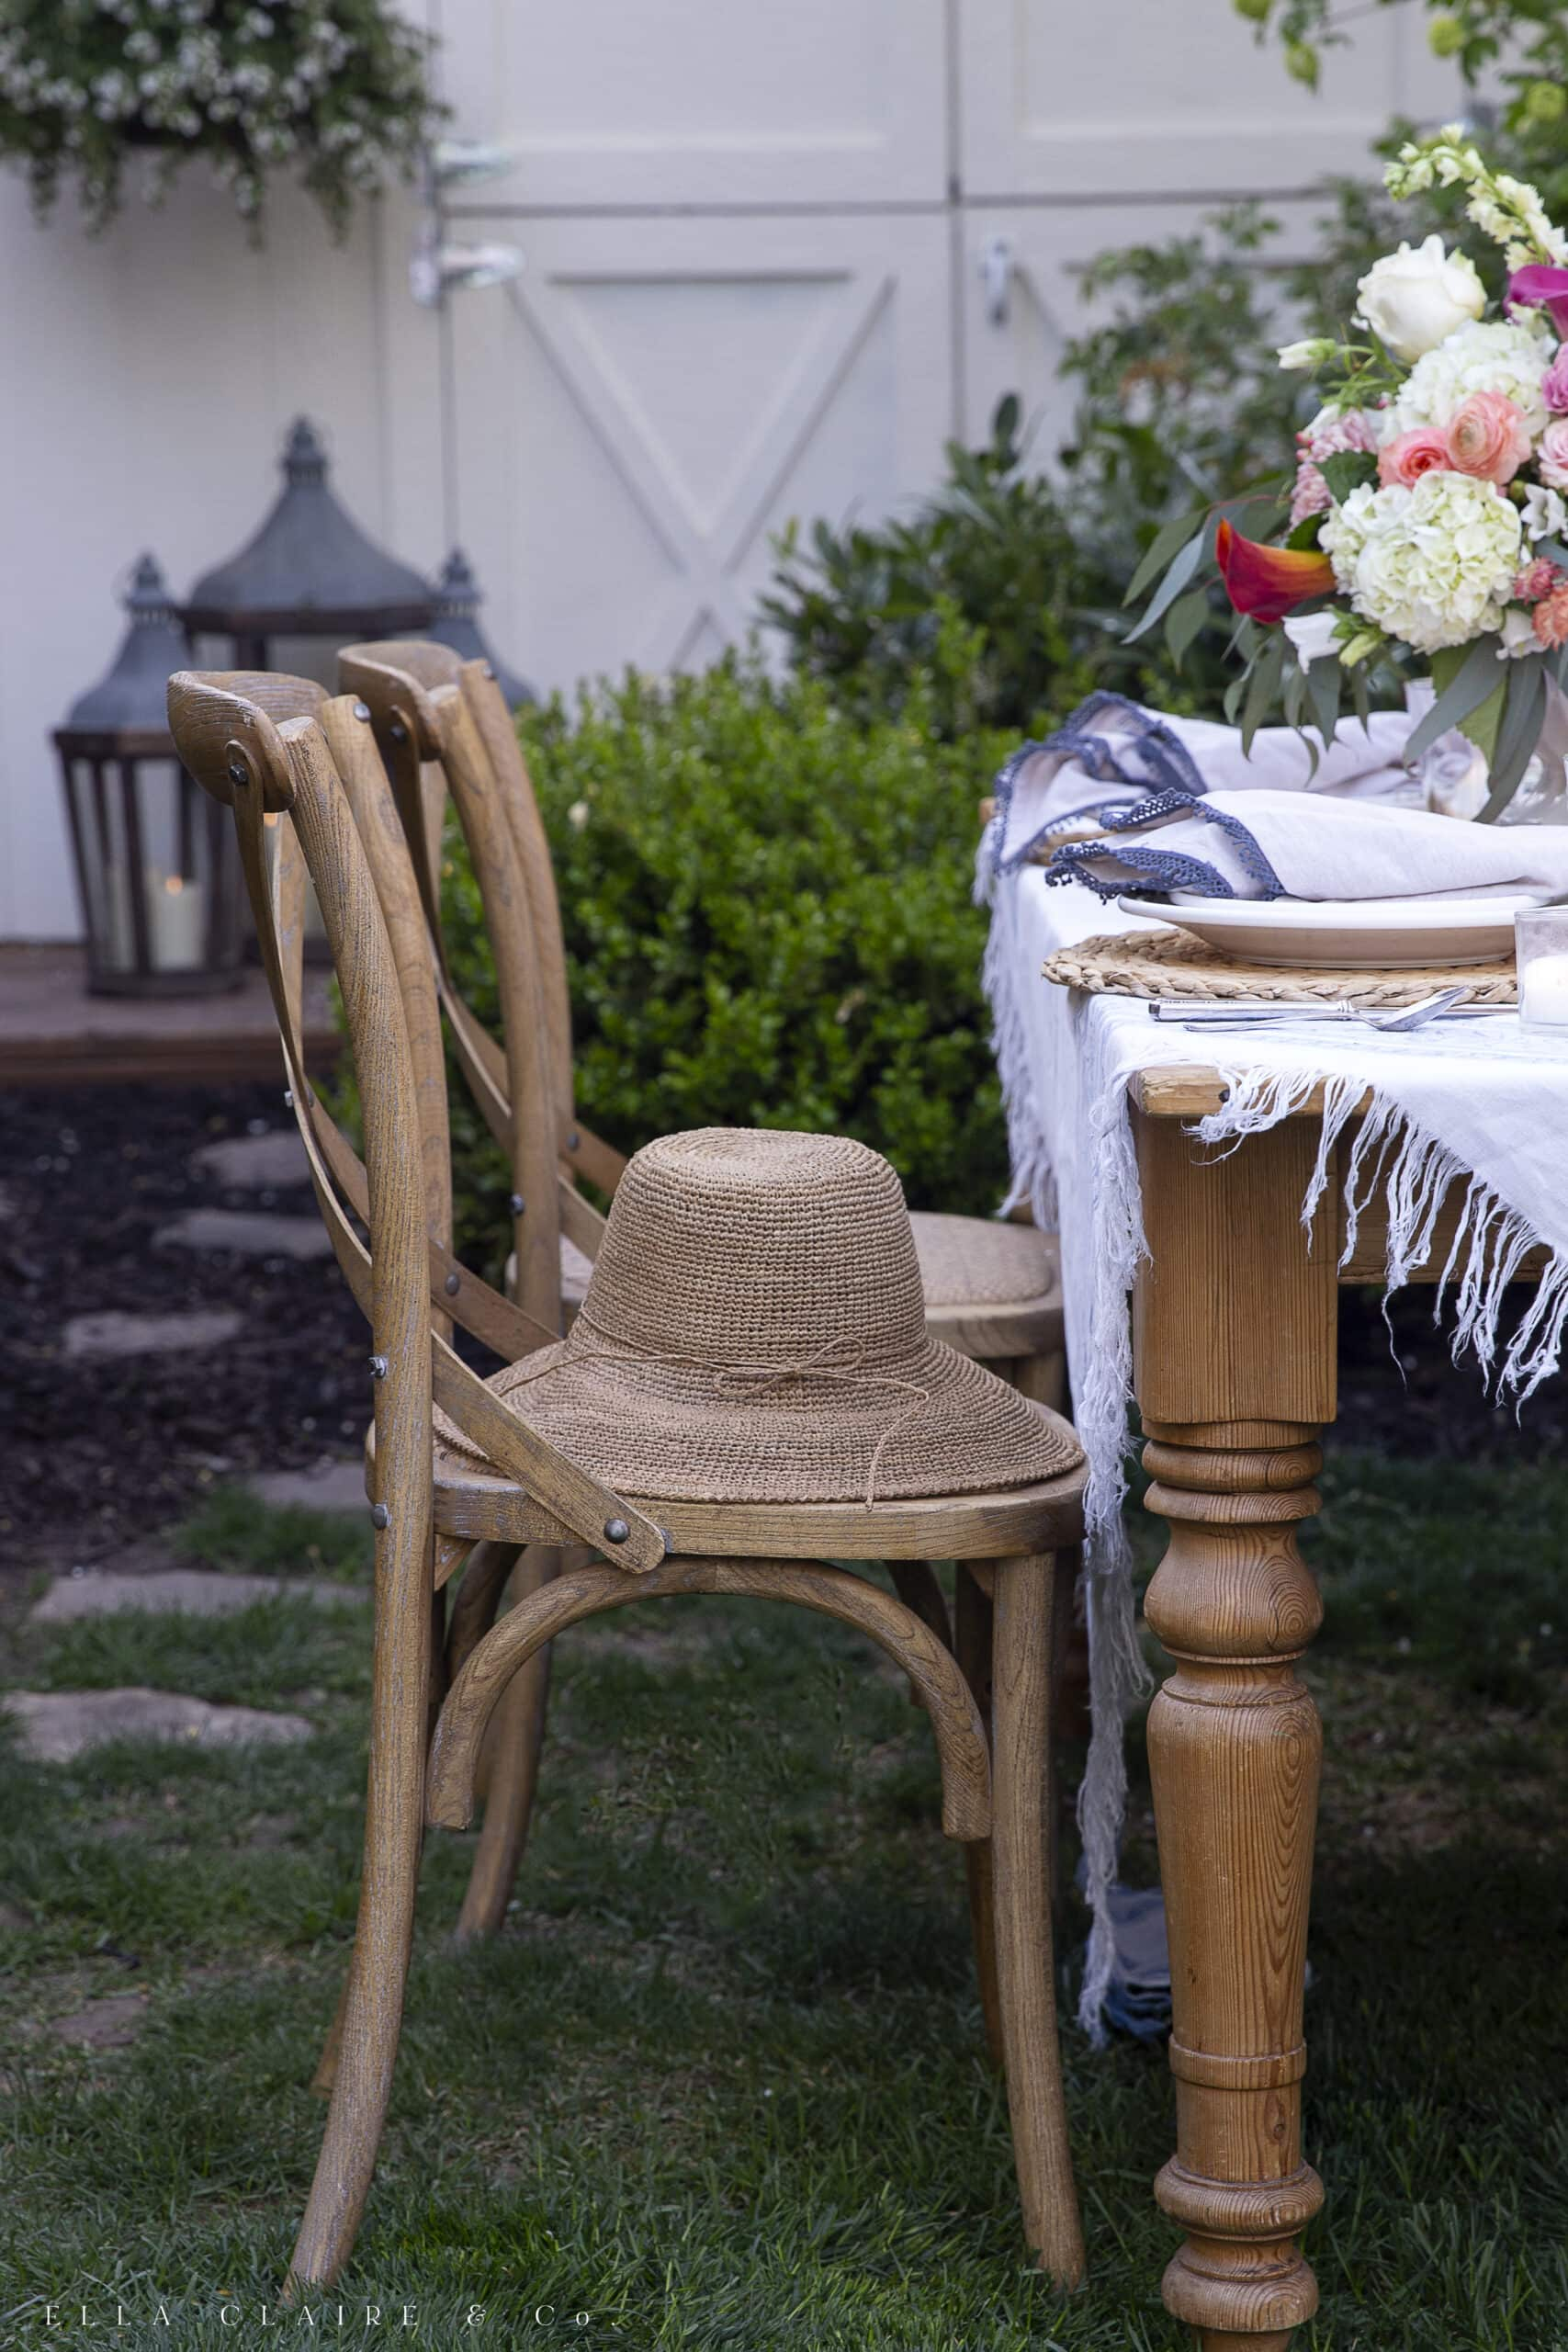 hat on chair next to table set for spring entertaining